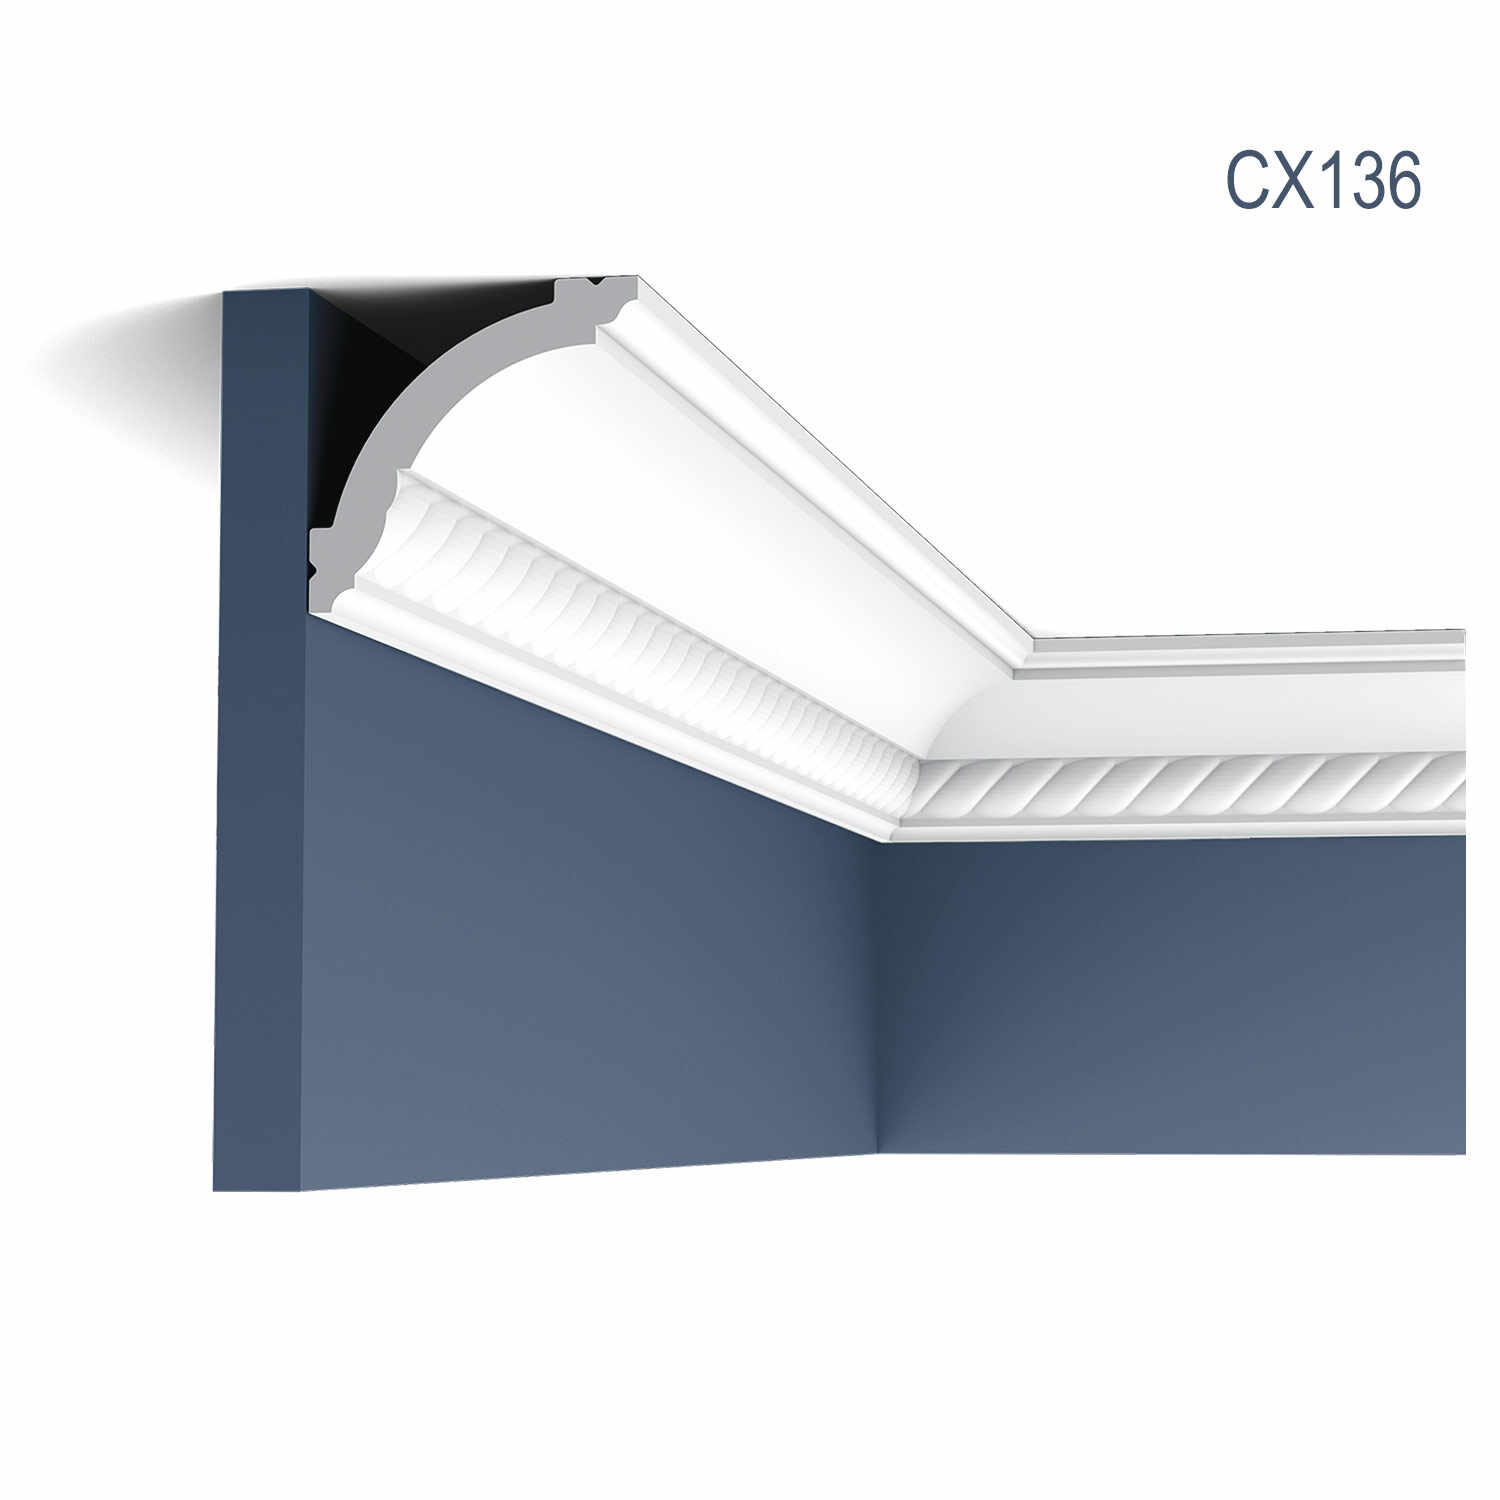 Cornisa Axxent CX136, Dimensiuni: 200 X 6.9 X 7.1 cm, Orac Decor